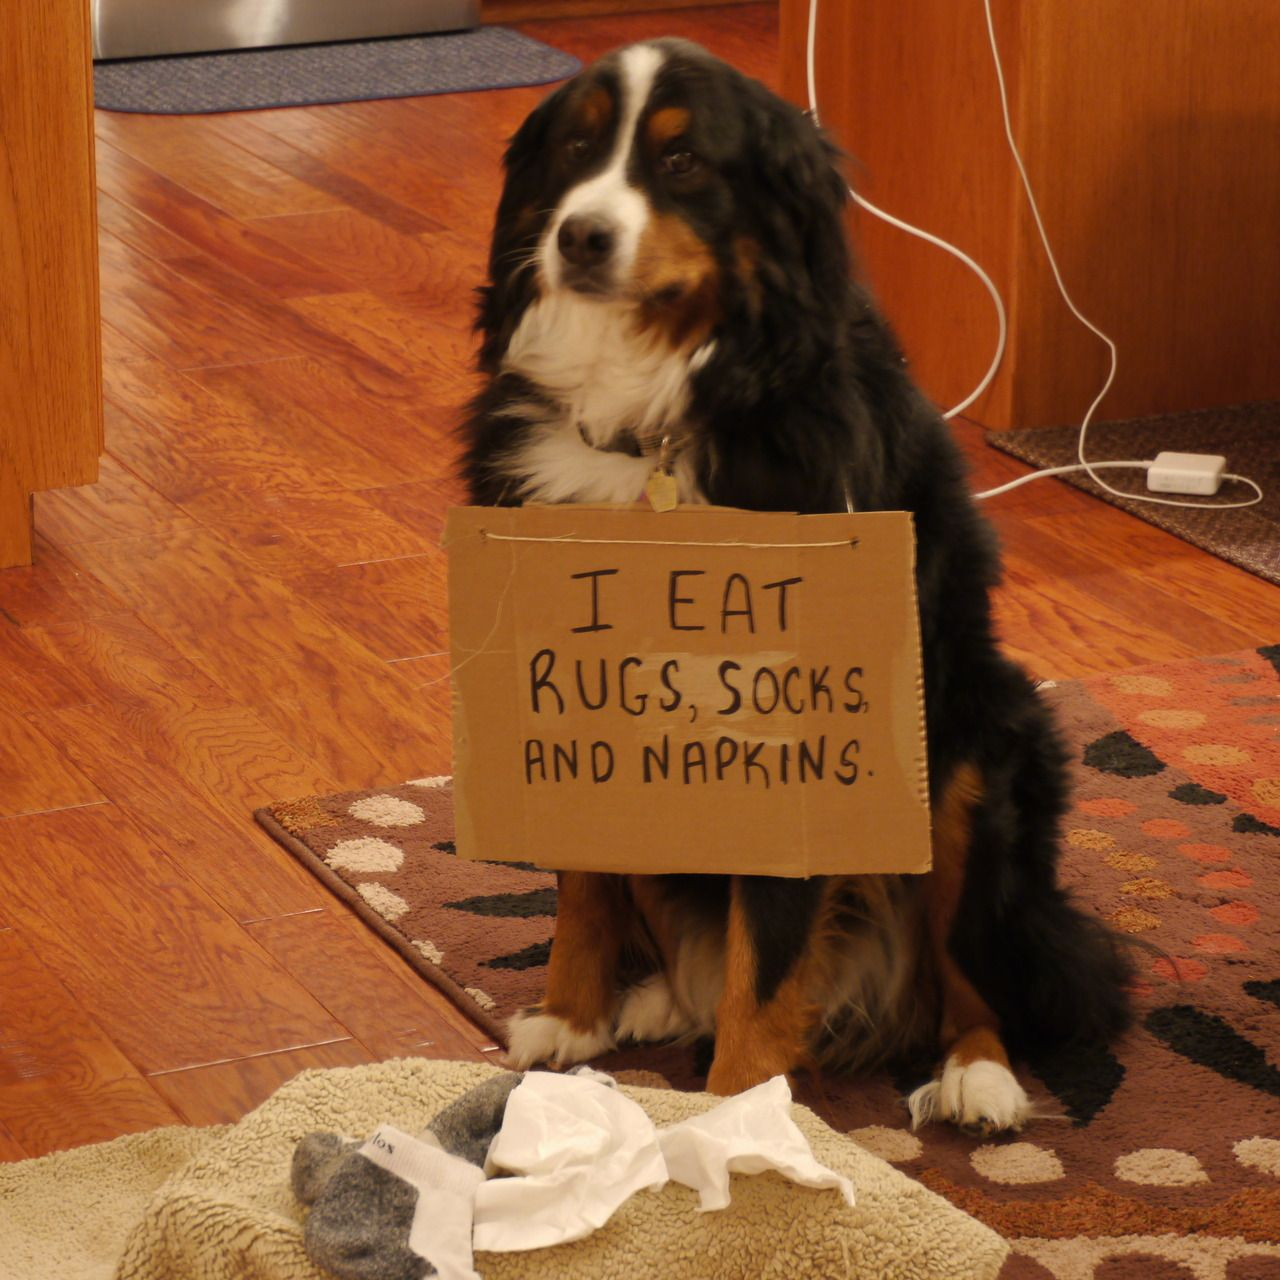 Dog Eating Wool Rug: I Eat Rugs, Socks And Napkins.